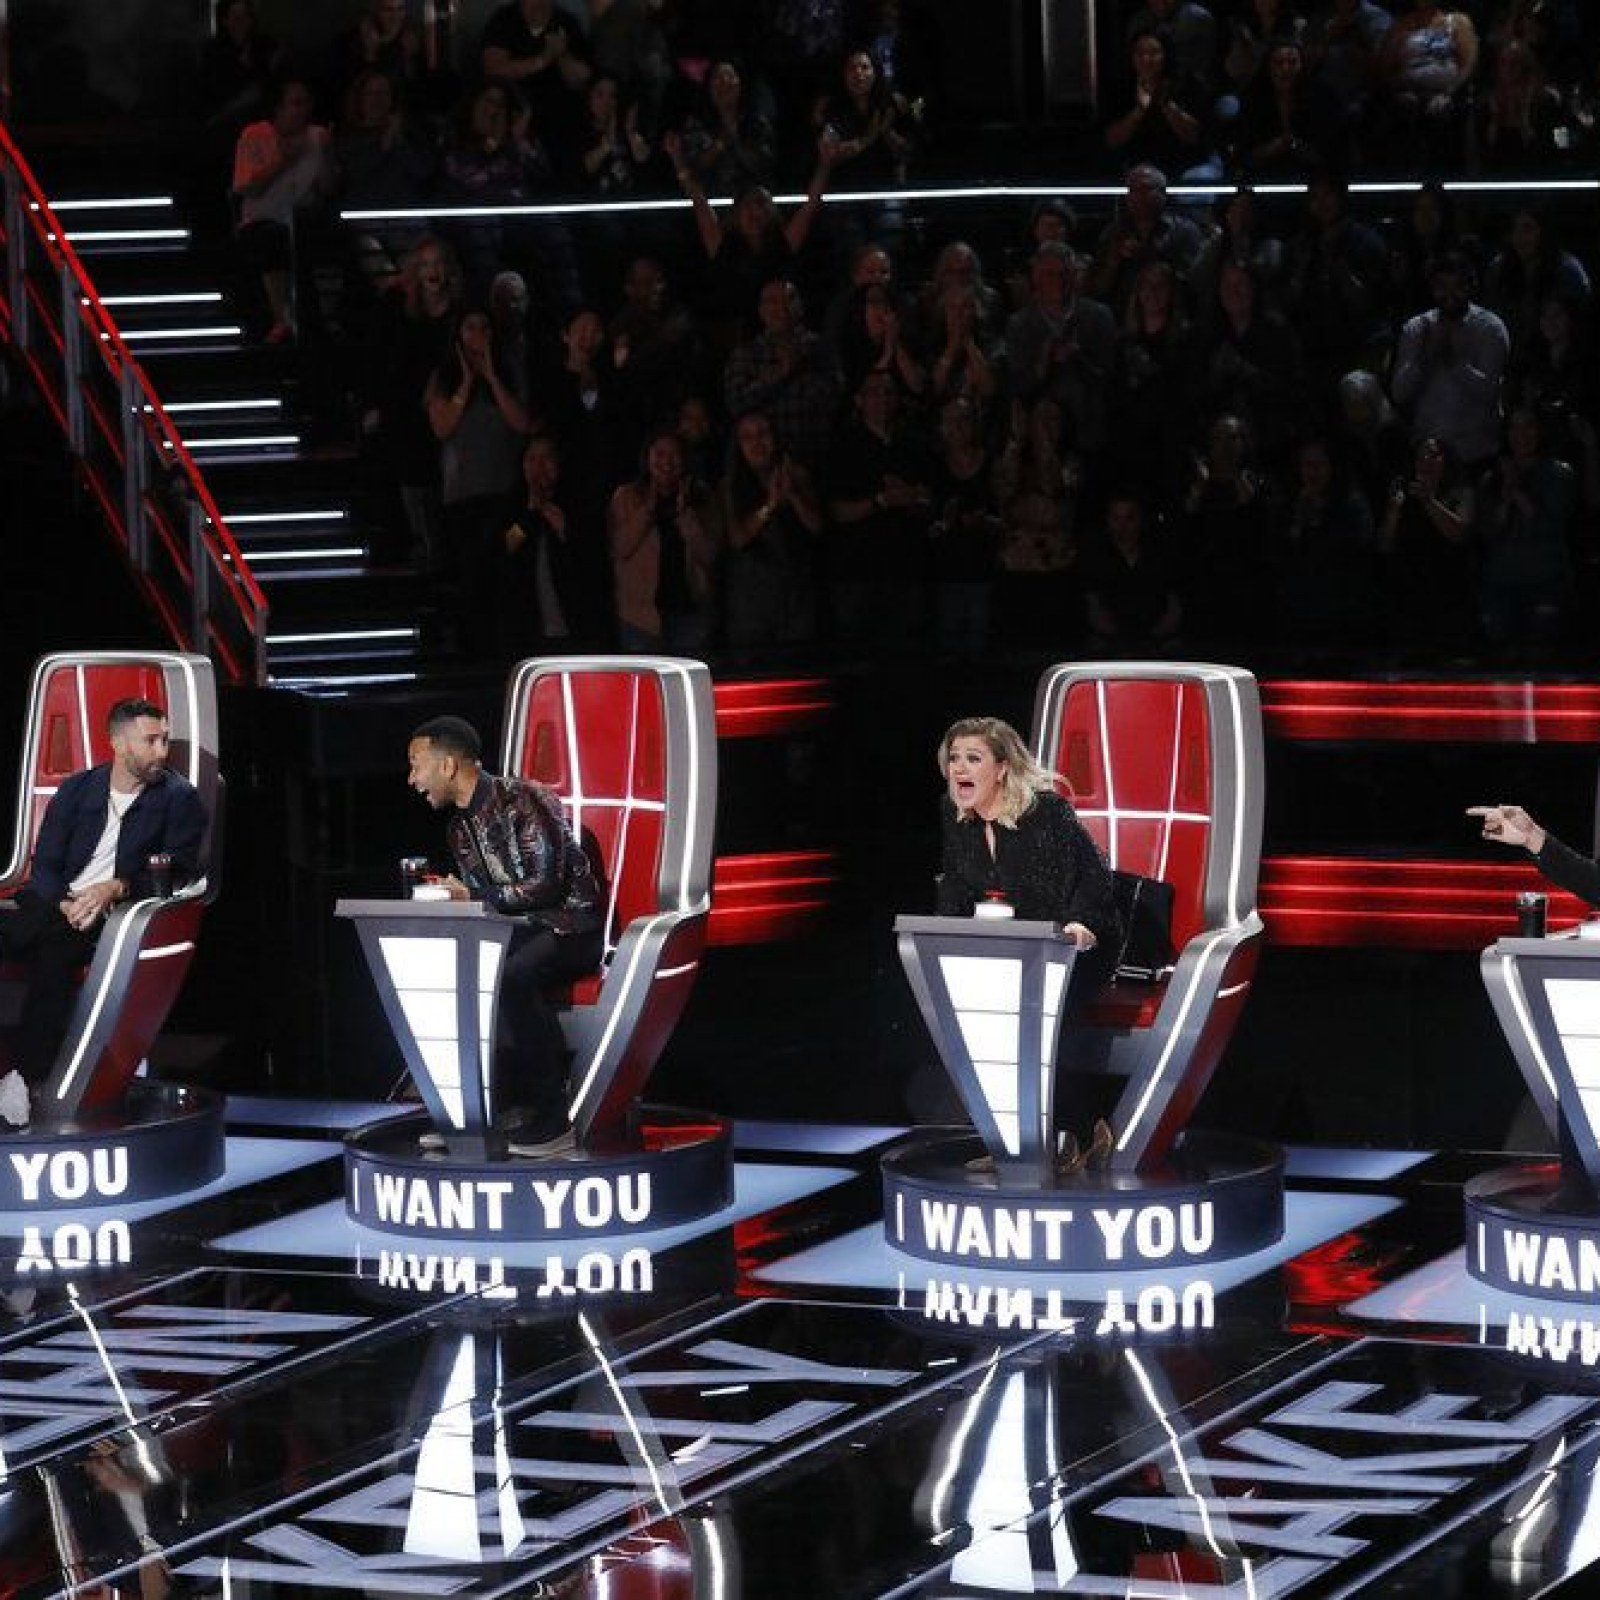 The Voice' Season 16, Episode 6 Blind Auditions Recap: Every